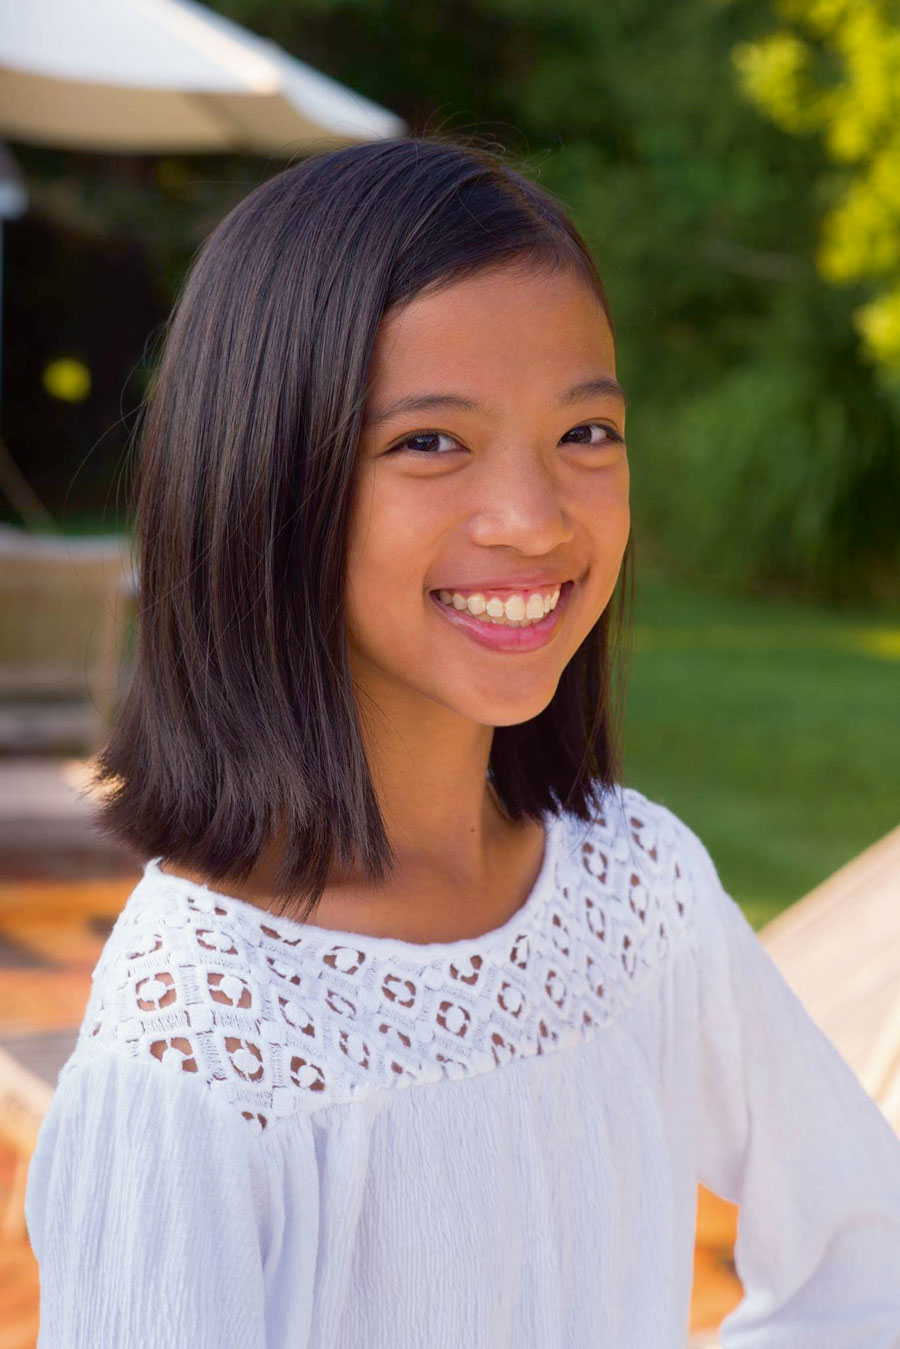 13-Year Old Isabel Sieh Is Philippines' Youngest